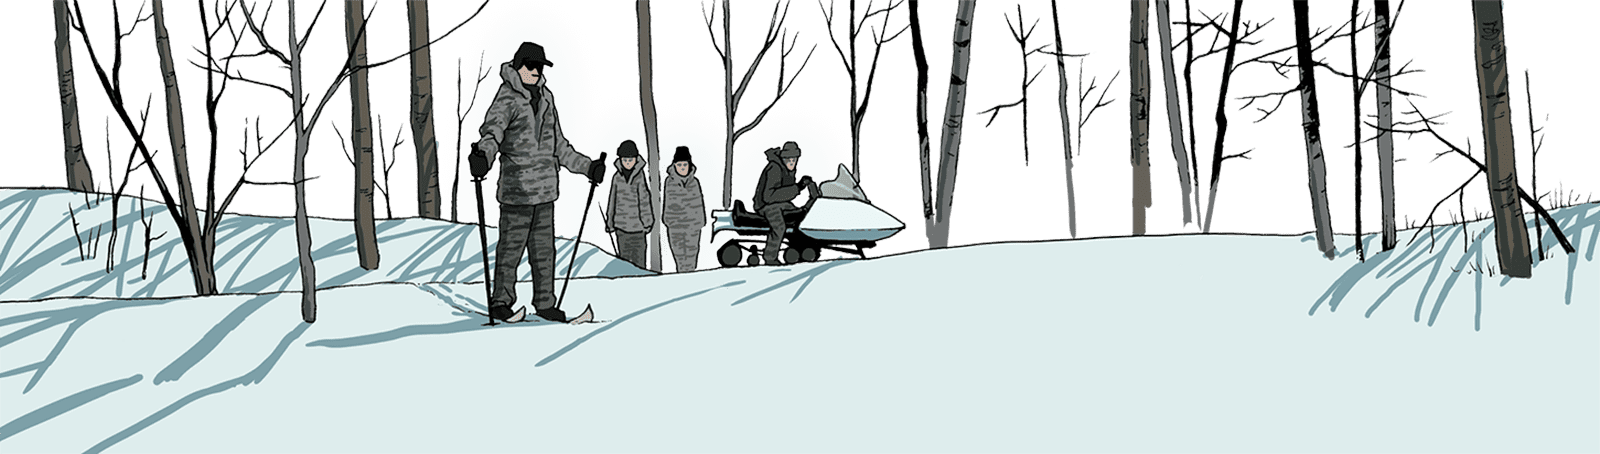 researchers in snow